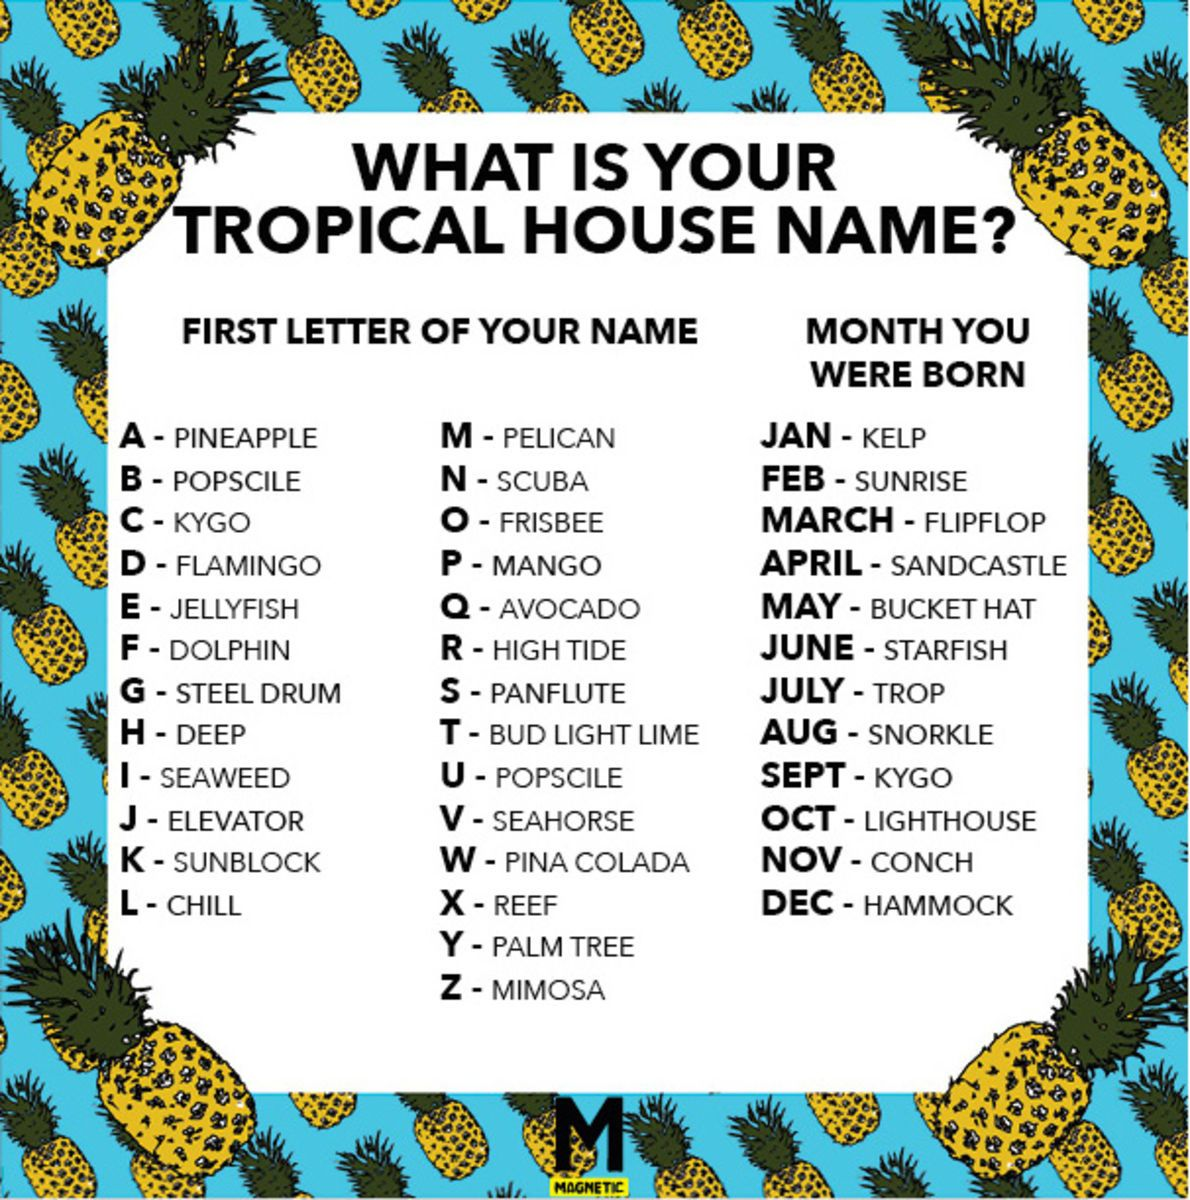 We Made You A Tropical House Name Generator - Magnetic